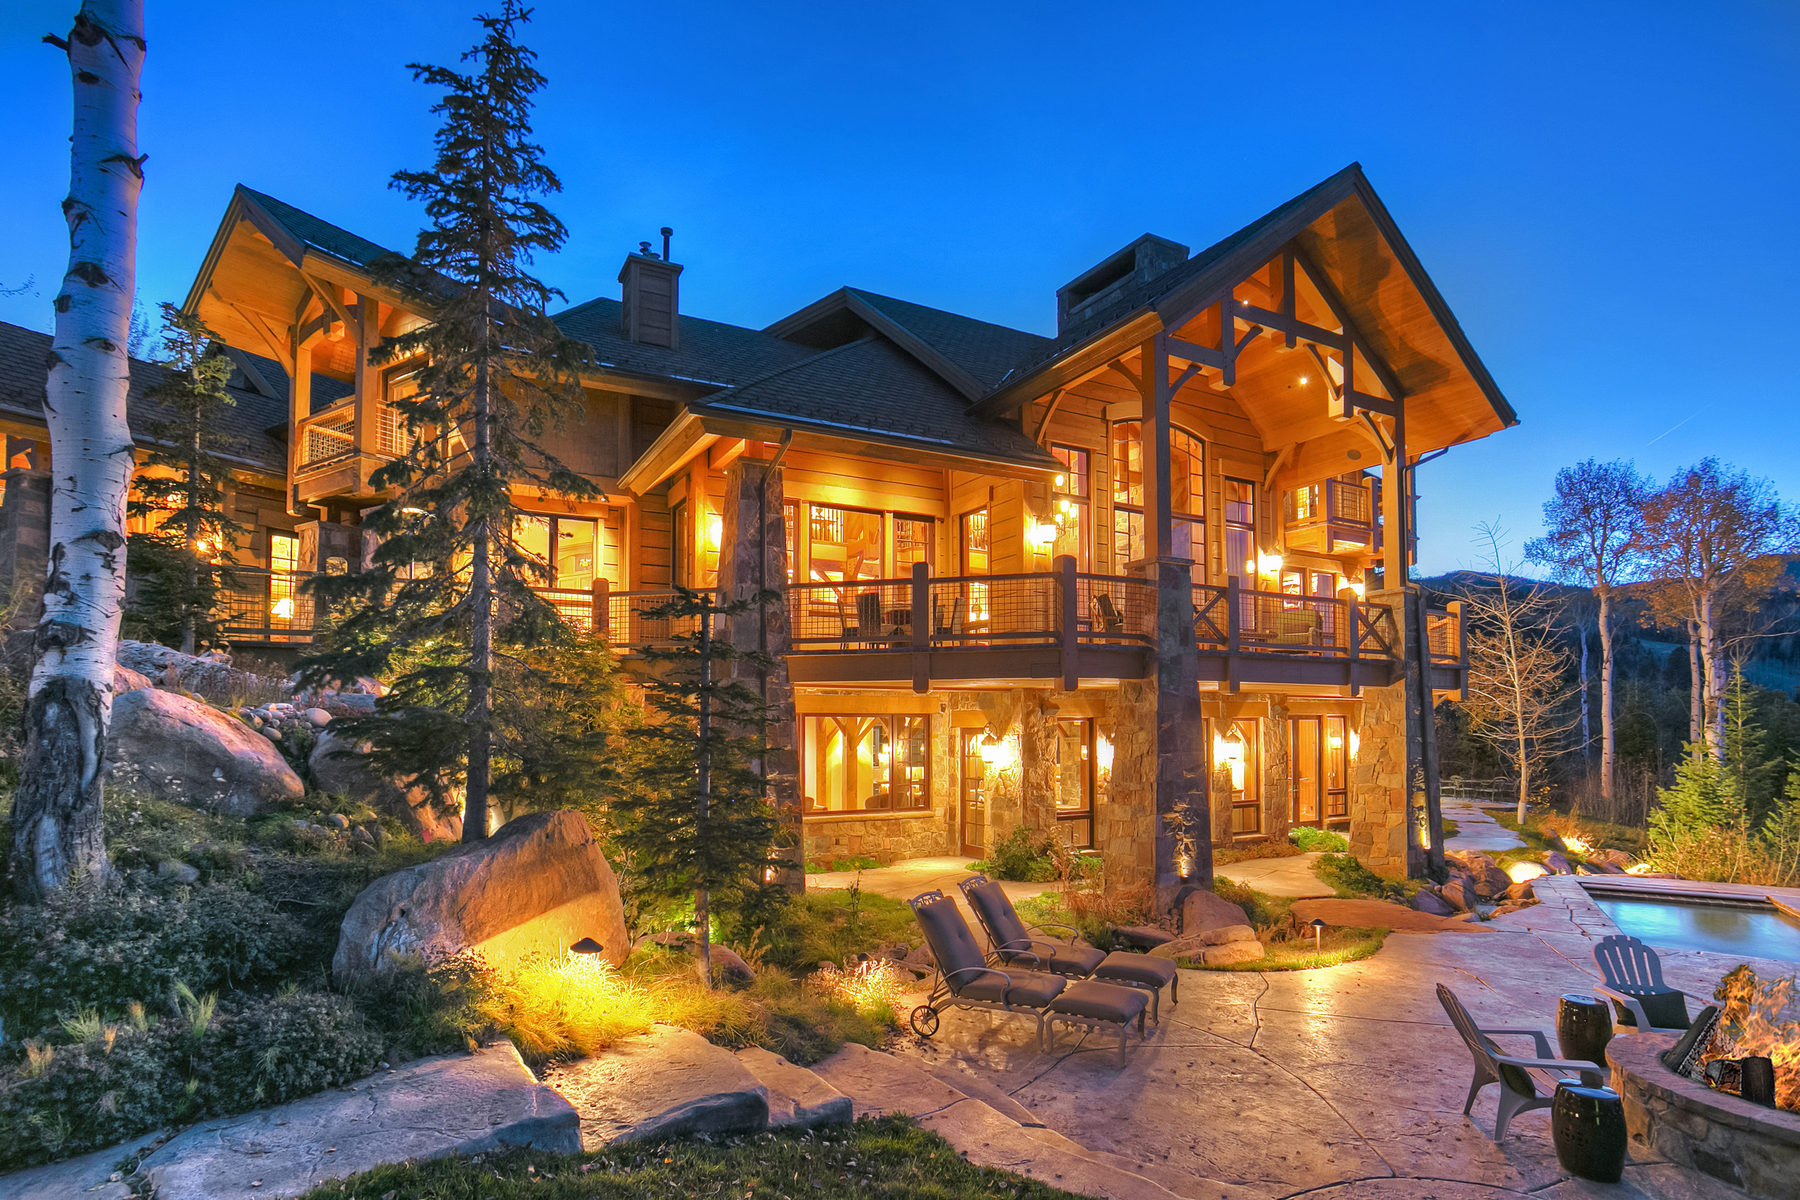 Villa per Vendita alle ore Ski In/Out Mountain Chateau at Park City 10 Minutes to Main Street 12 White Pine Canyon Rd Park City, Utah 84098 Stati Uniti